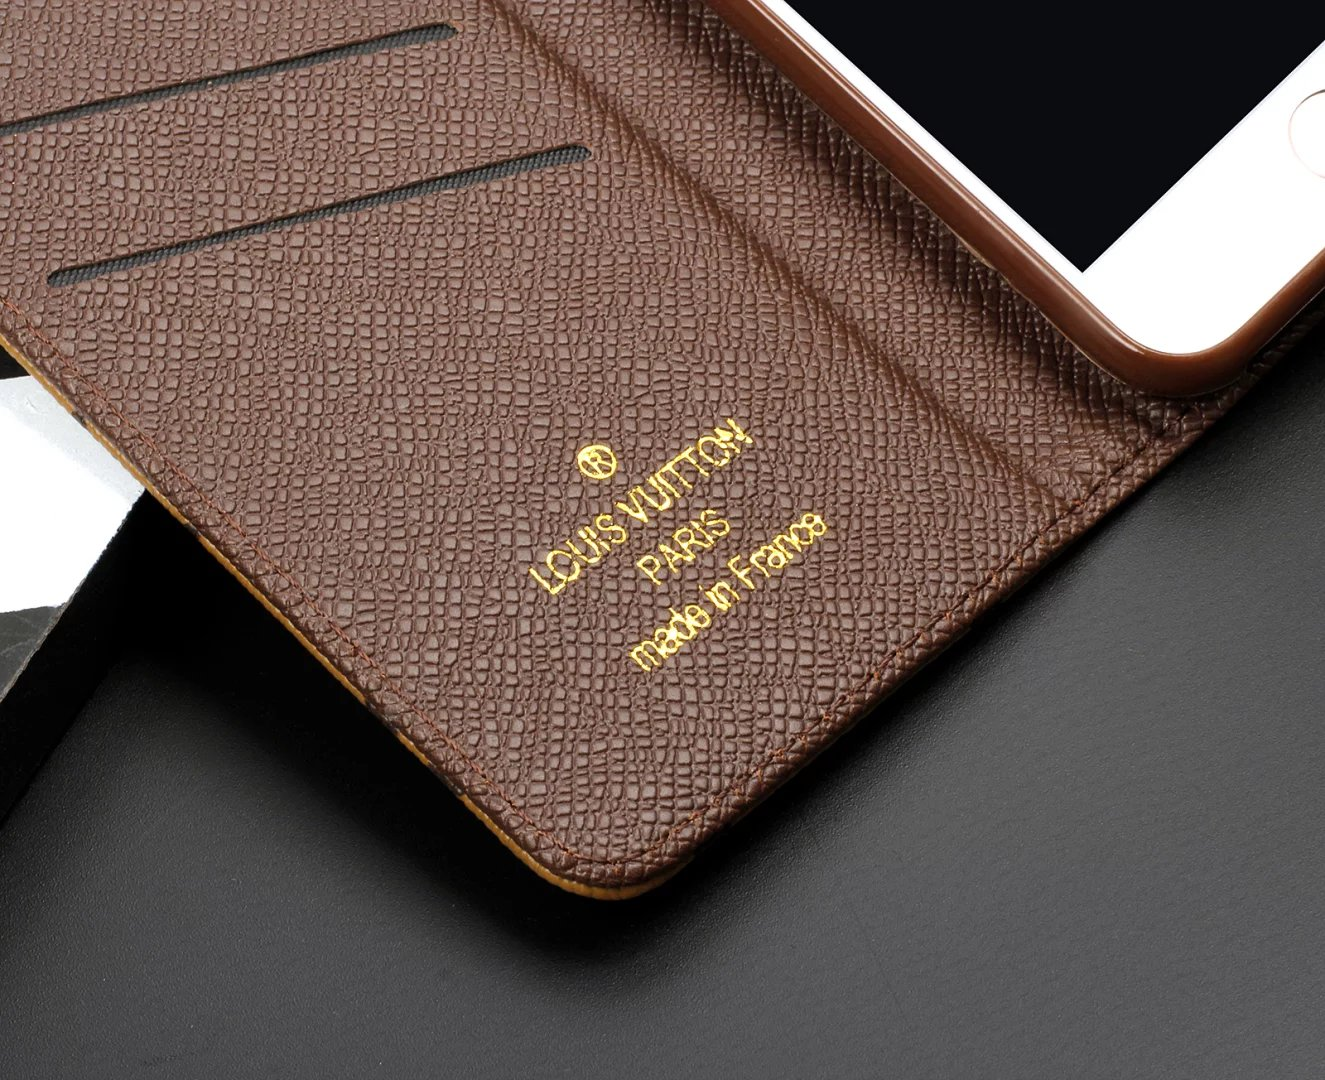 apple case for iphone 8 iphone 8 cases on sale Louis Vuitton iphone 8 case the best cases for iphone 8 best phone cases for iphone 8 iphone 8 case price mobile phone cases online i phone cases iphone 8 case screen protector